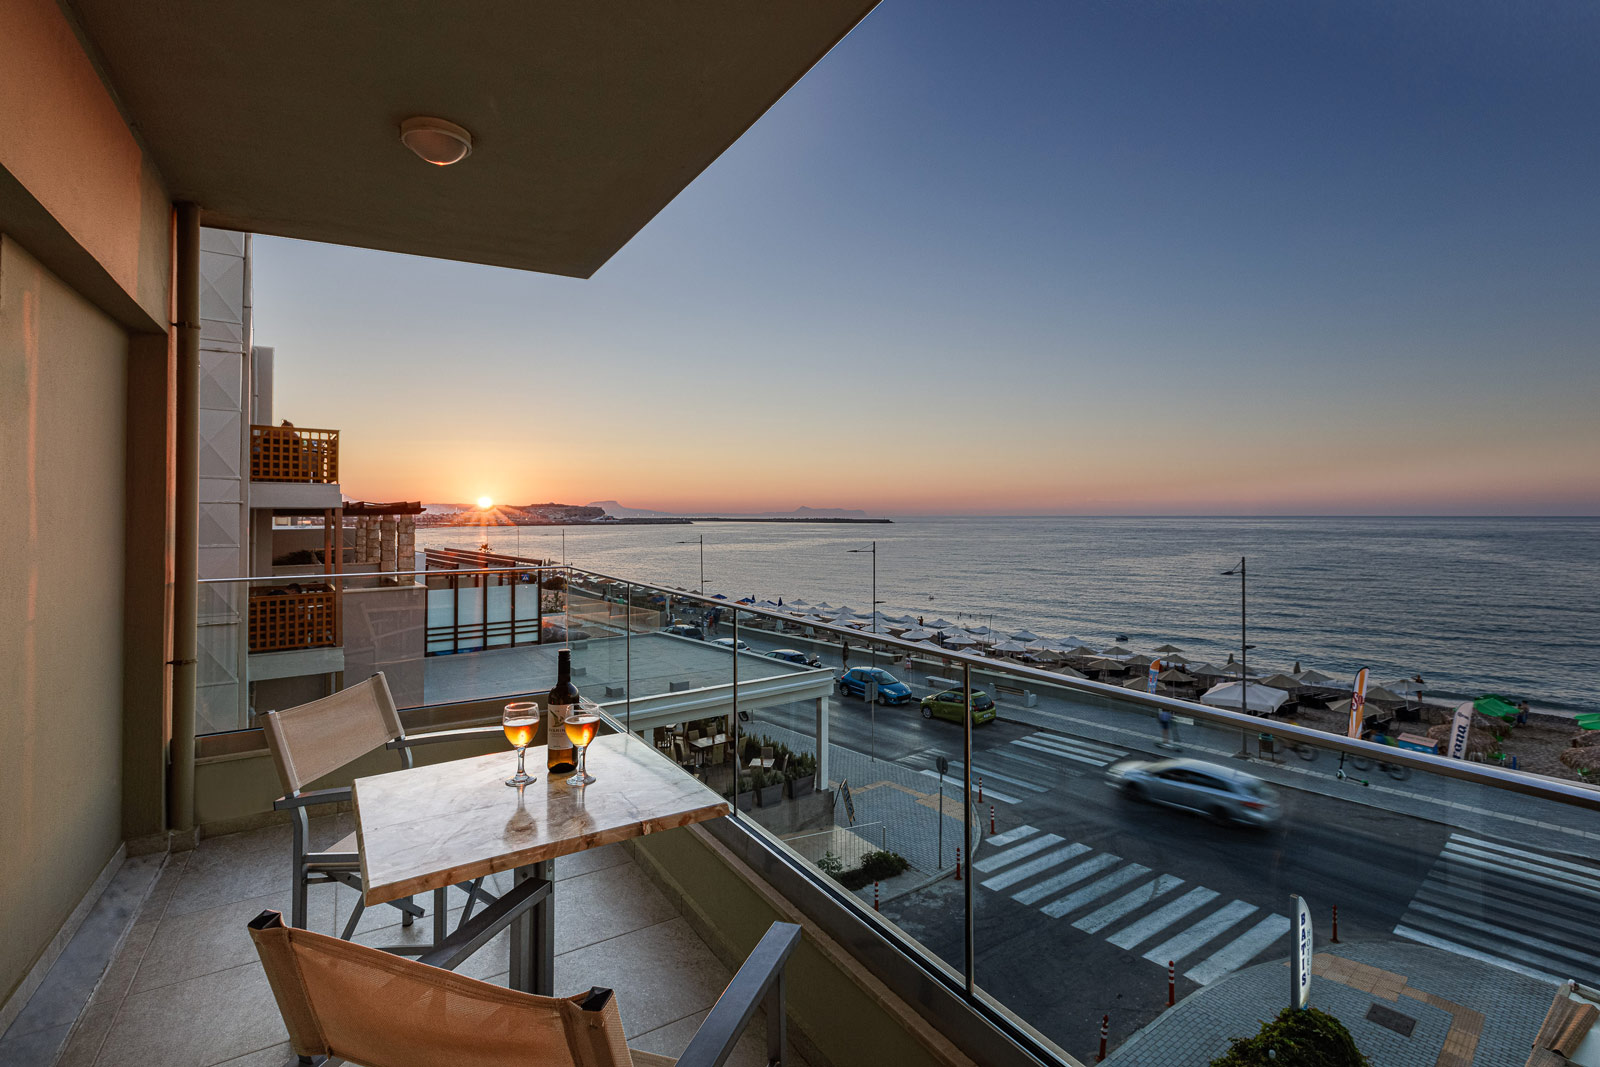 Hotel Balcony by sunset, table of wine with sea view